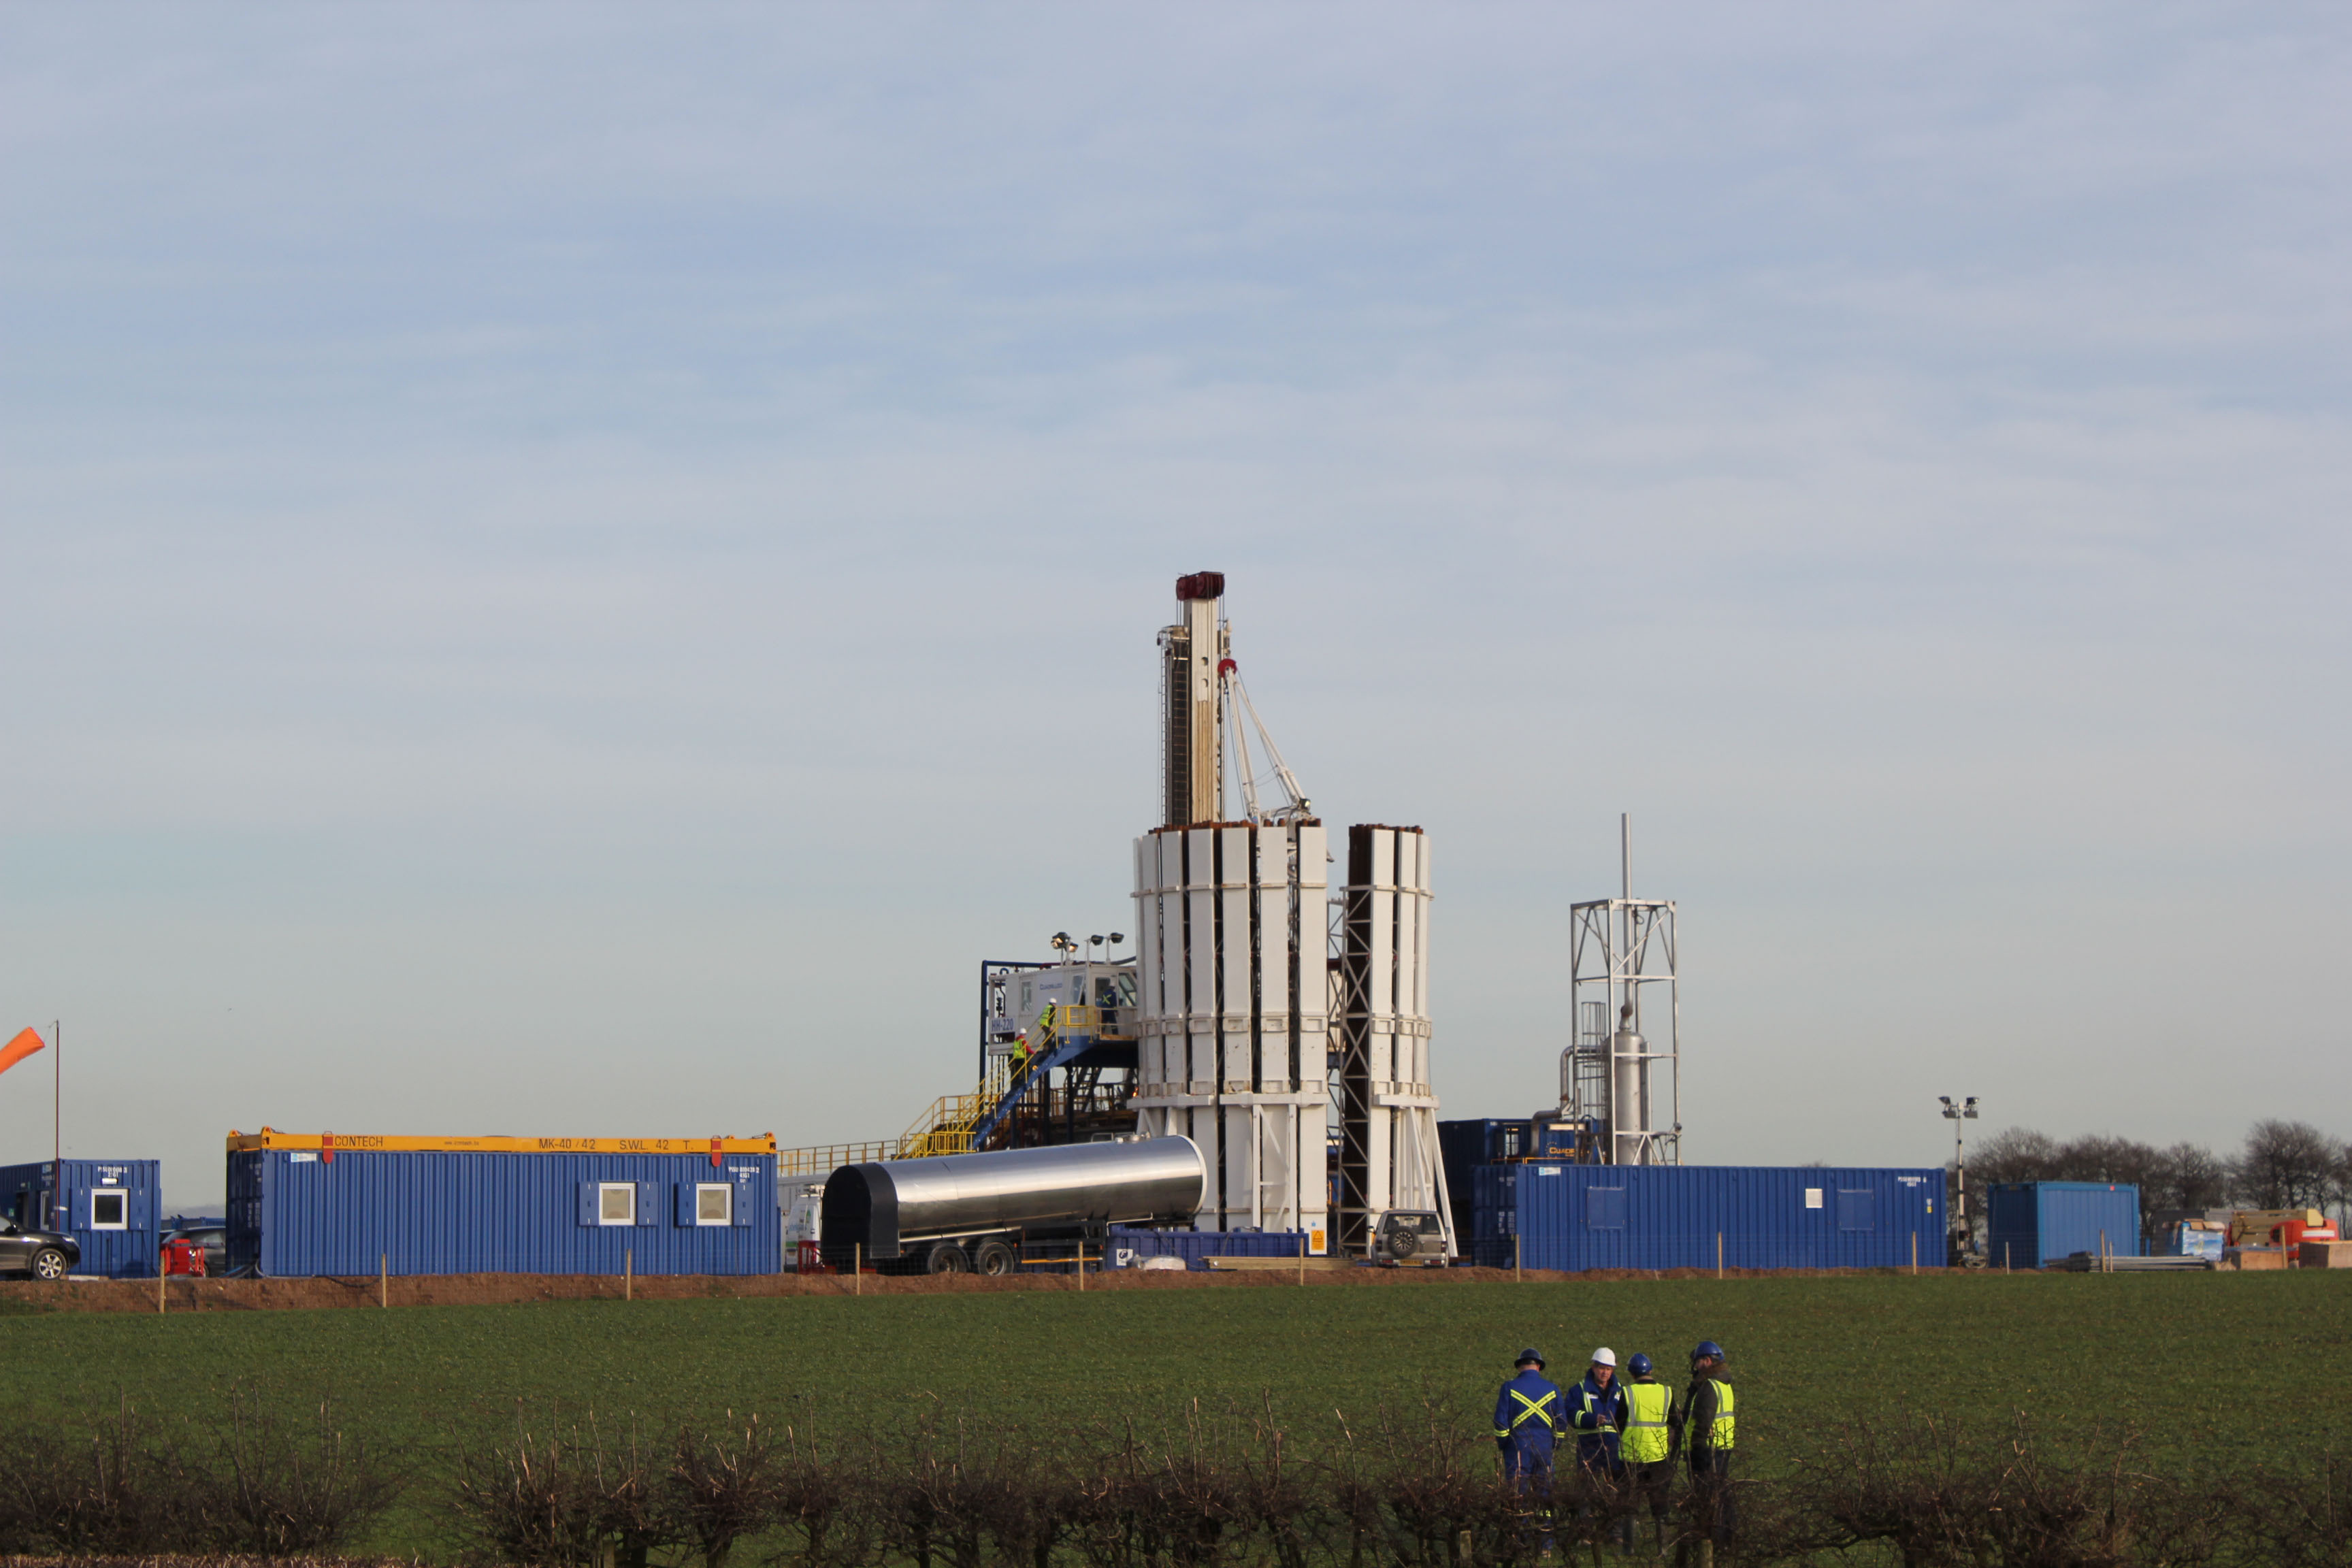 Fracking in Lancashire: 1.1 magnitude tremor halts work